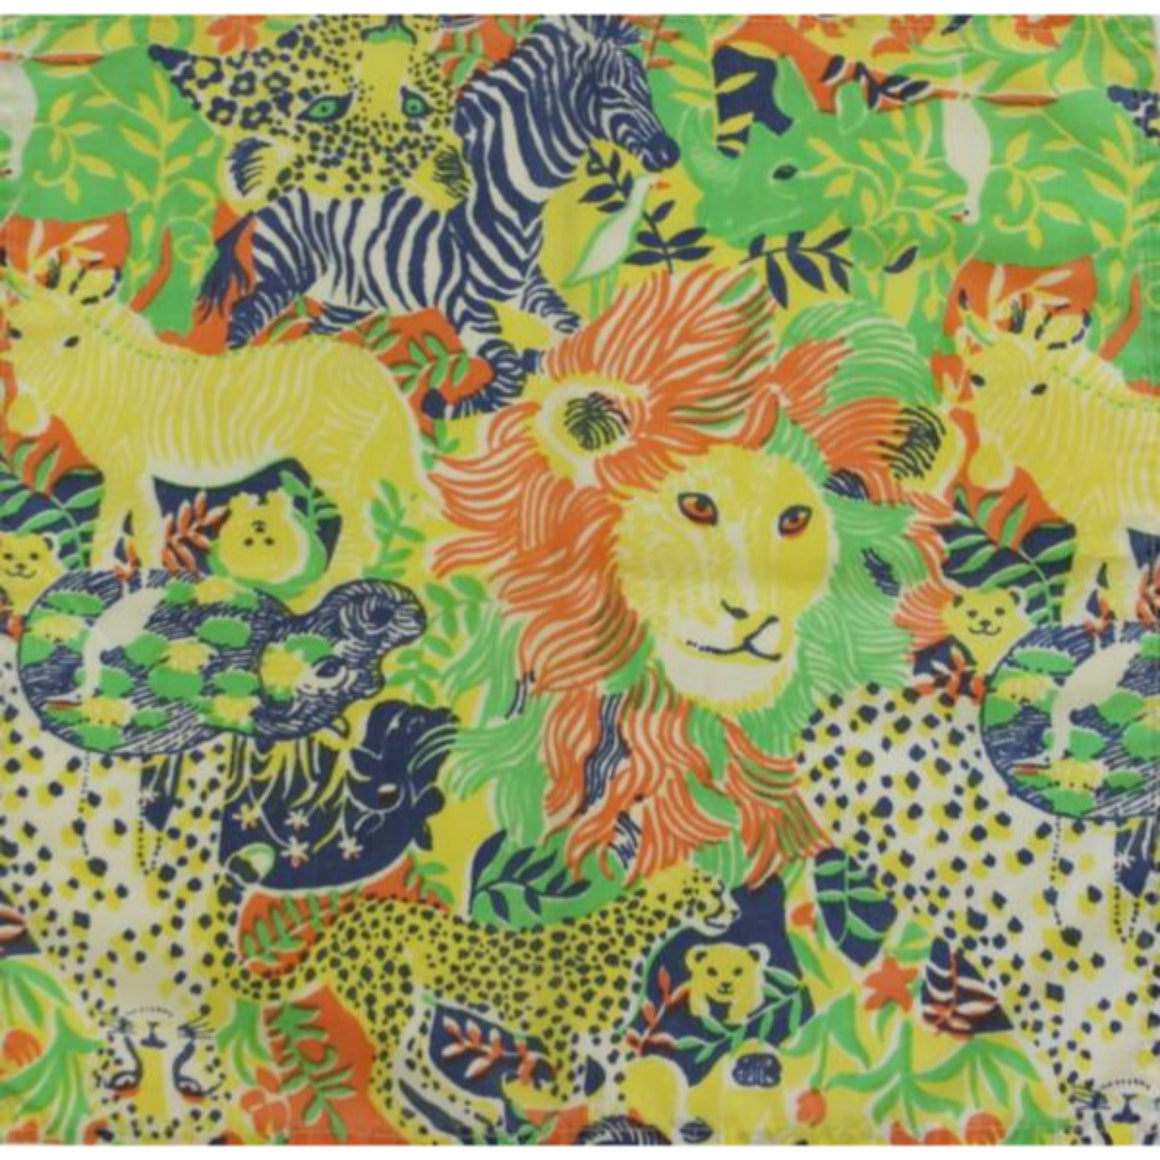 Set of 5 Lilly Pulitzer Vintage Big Game Animals Pocket Squares